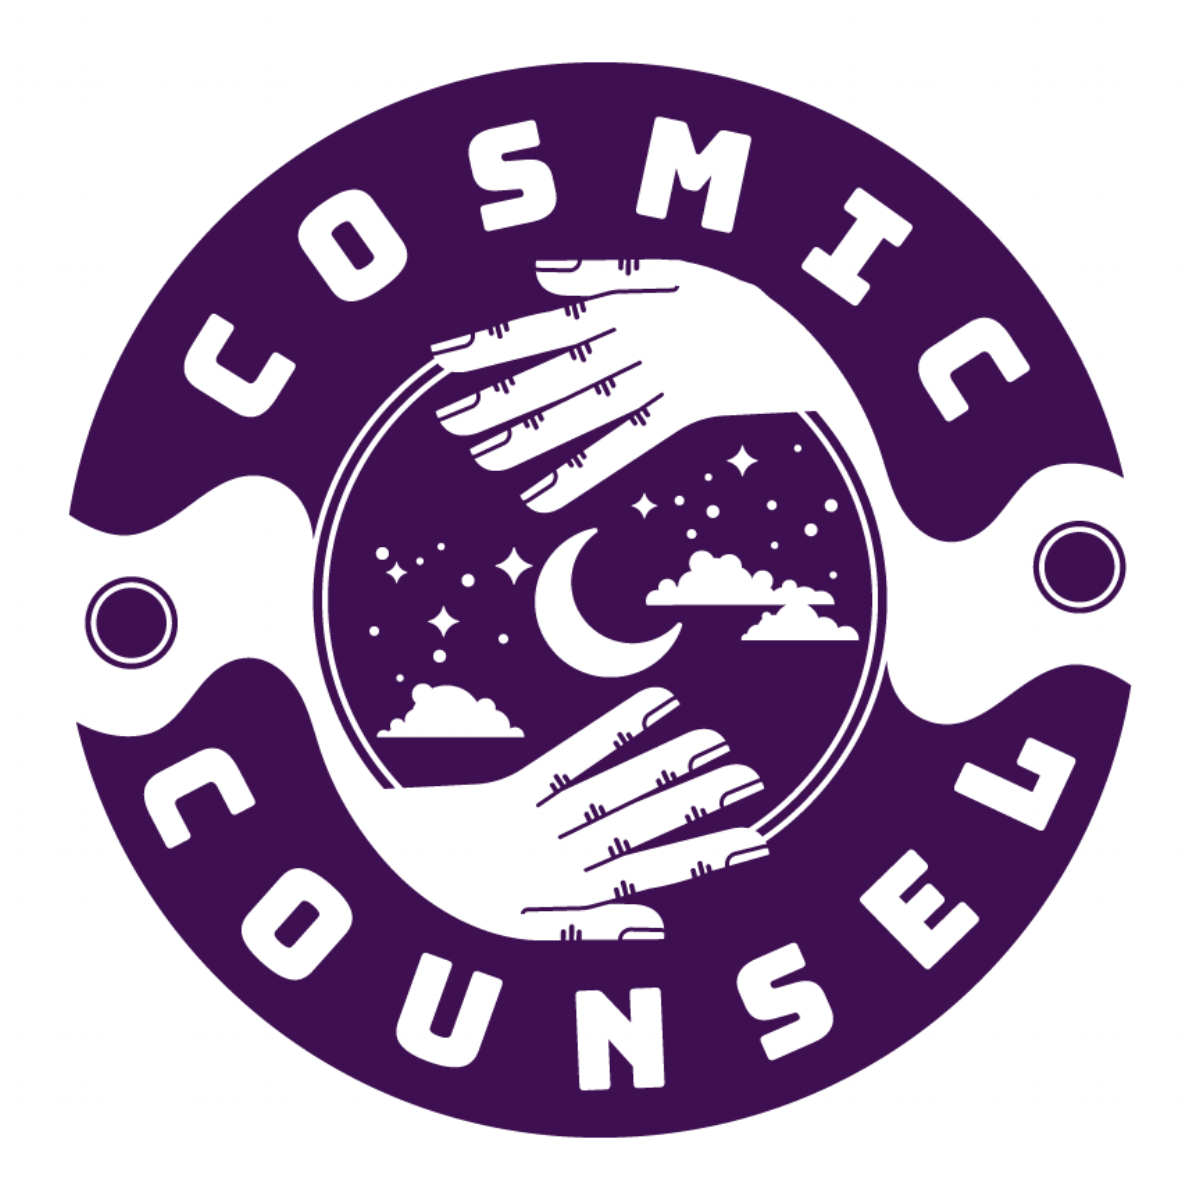 COSMIC COUNSEL | Astrology Readings and Community